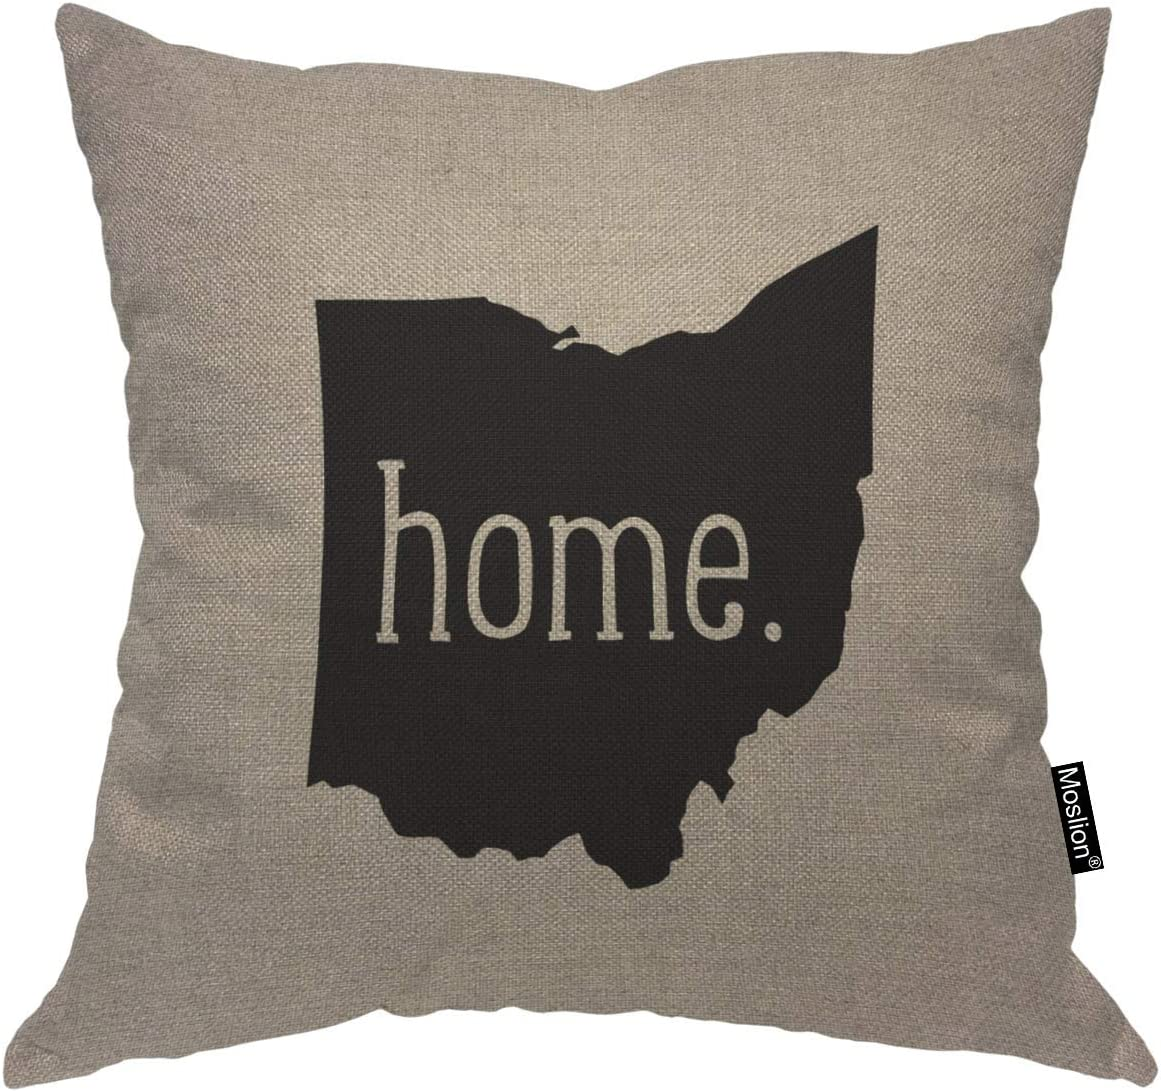 Moslion Throw Pillow Cover Home 18x18 Inch Ohio State Lettering Symbol Gray Black Square Pillow Case Cushion Cover for Home Car Decorative Cotton Linen